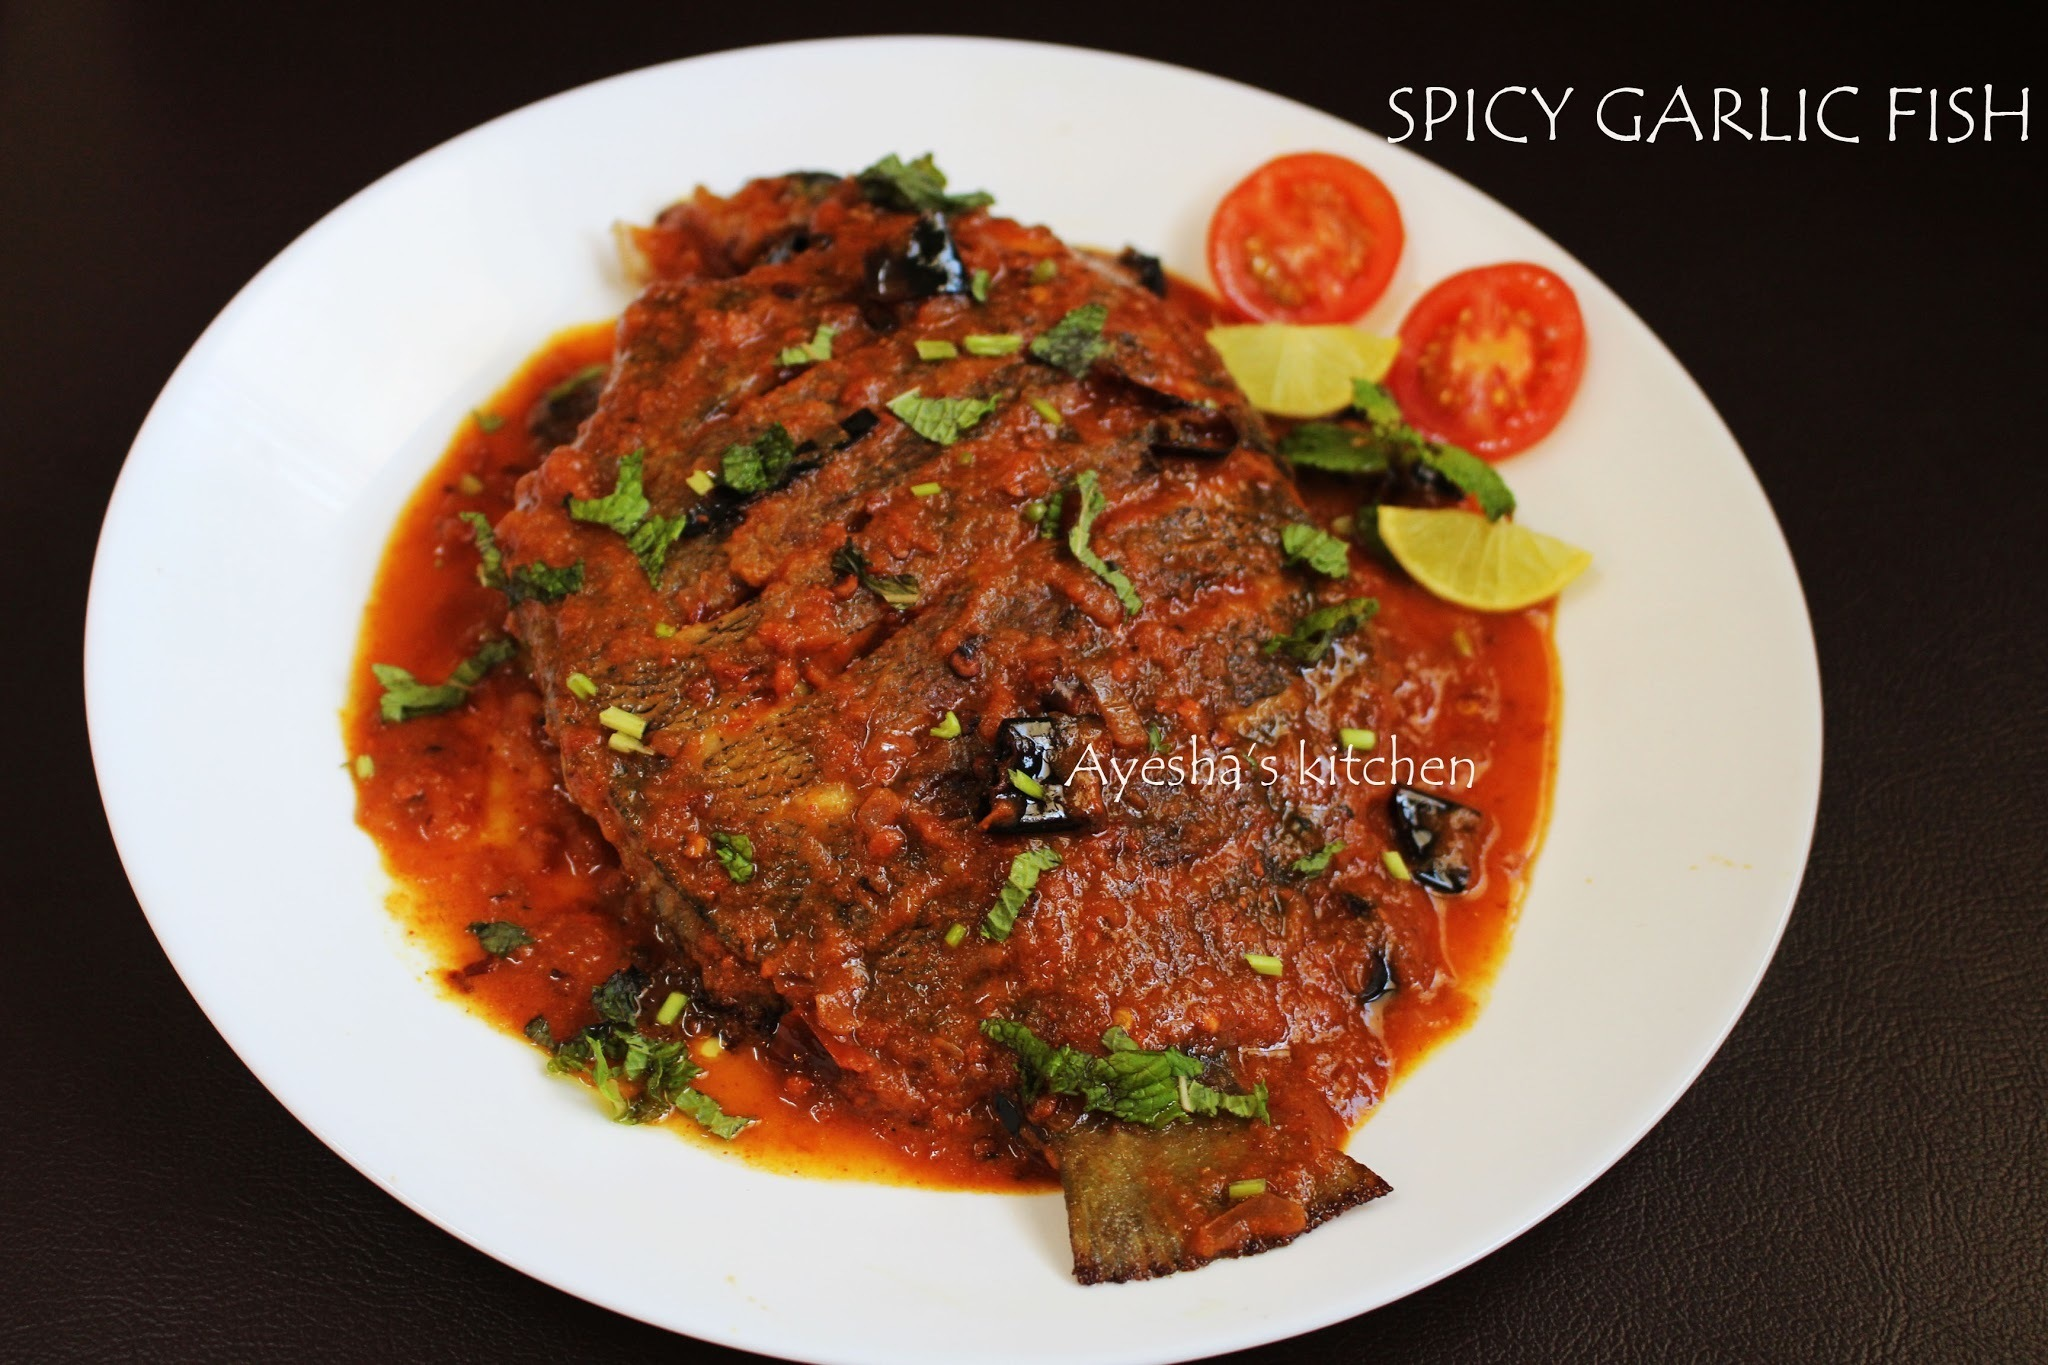 FISH RECIPES - SPICY GARLIC FISH